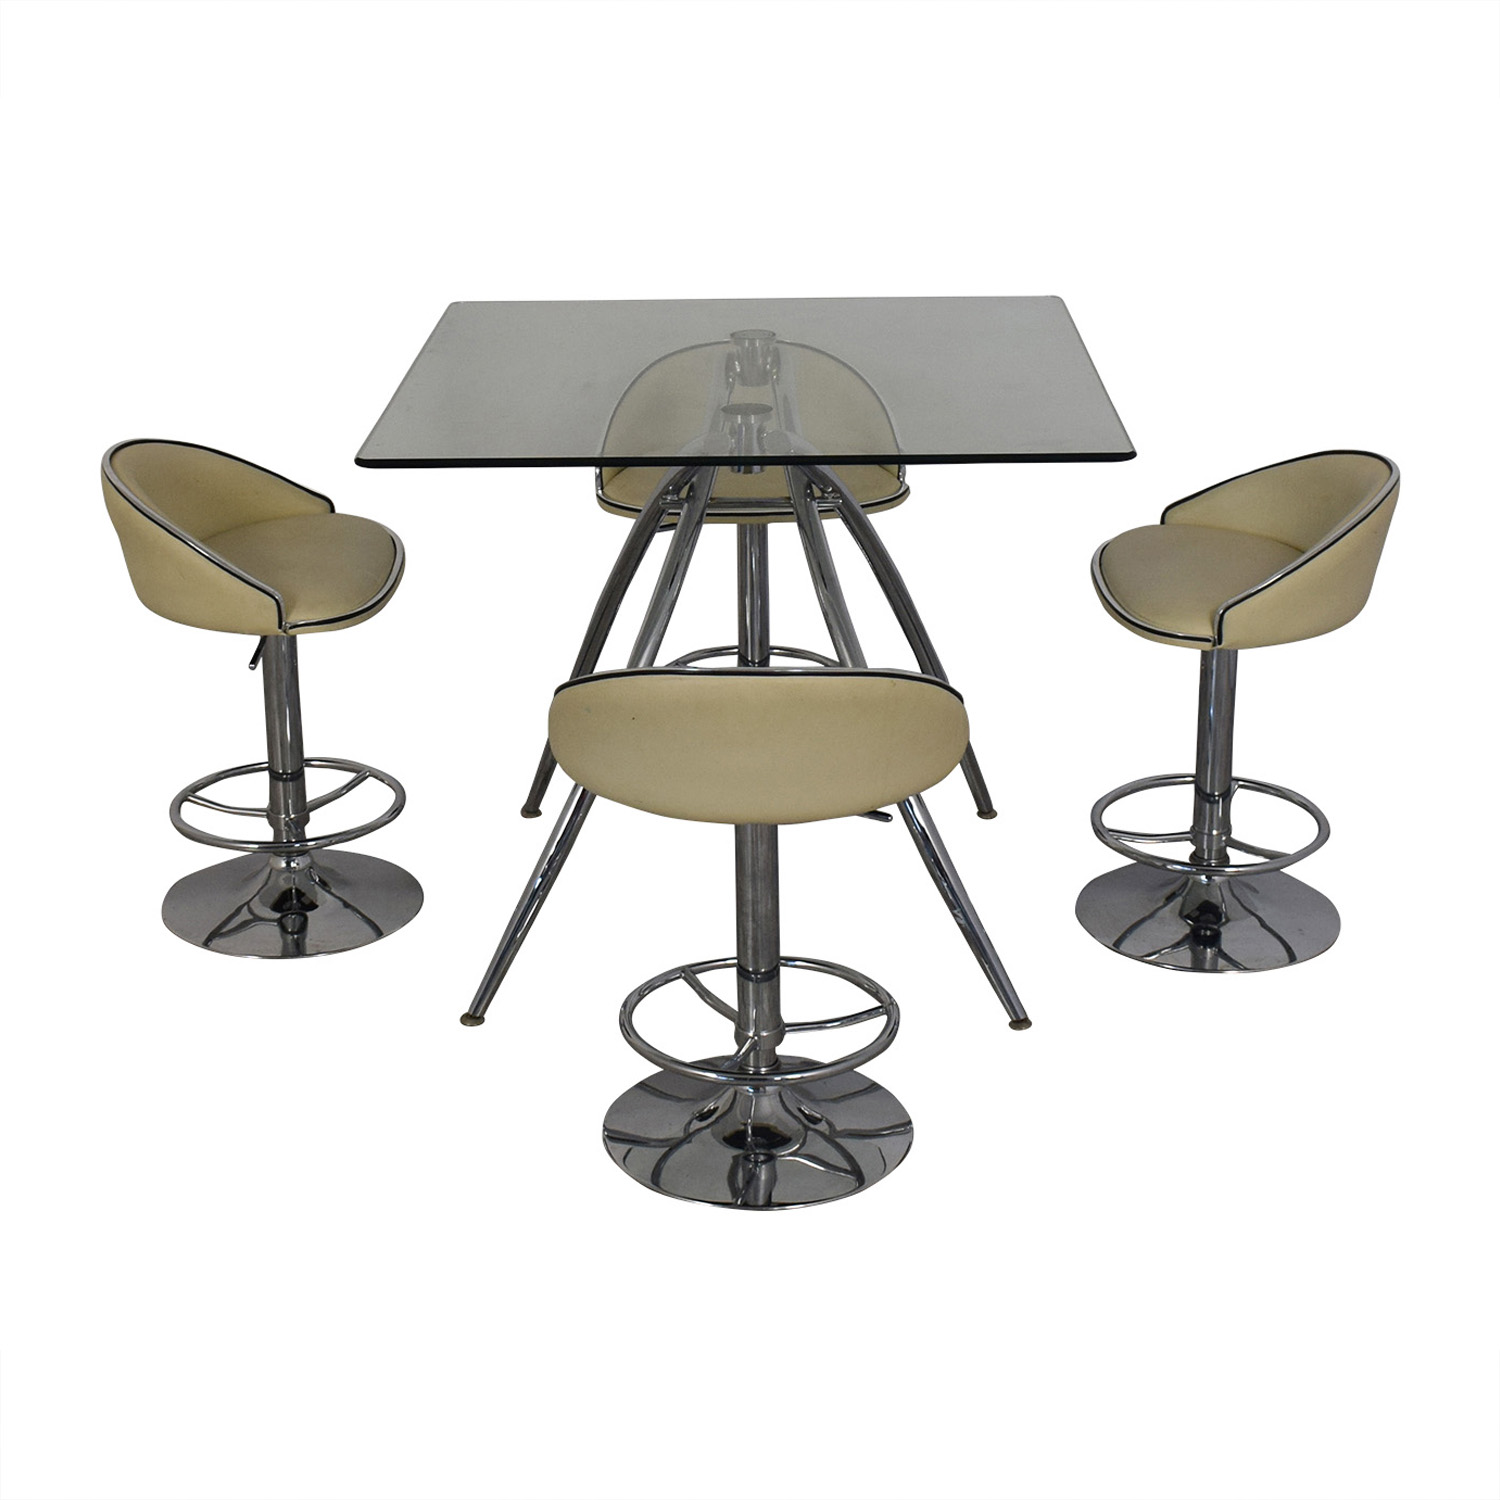 Chintaly Imports Adjustable Bar Stools and Glass Table Set / Dining Sets